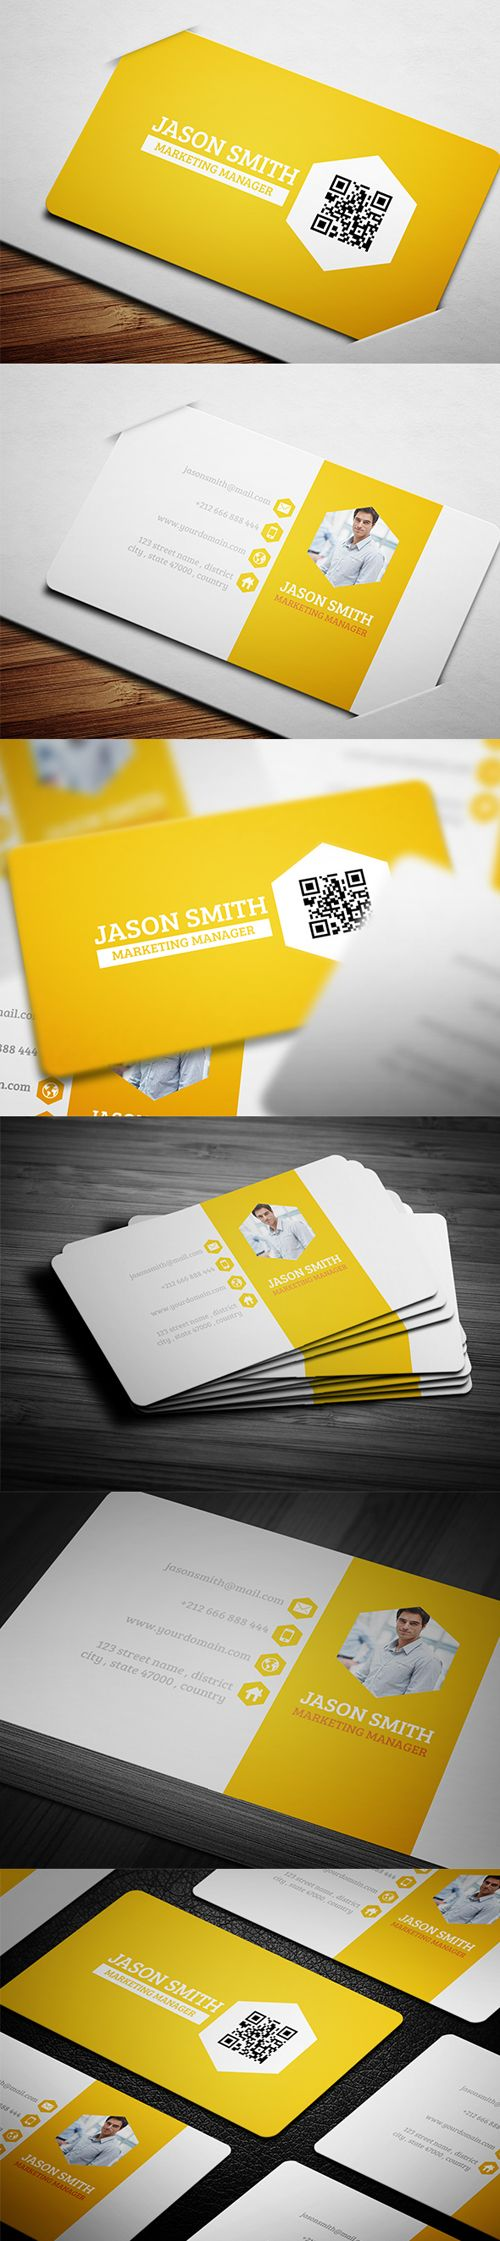 business cards template design - 4 #businesscards #businesscardtemplates #creativebusinesscards